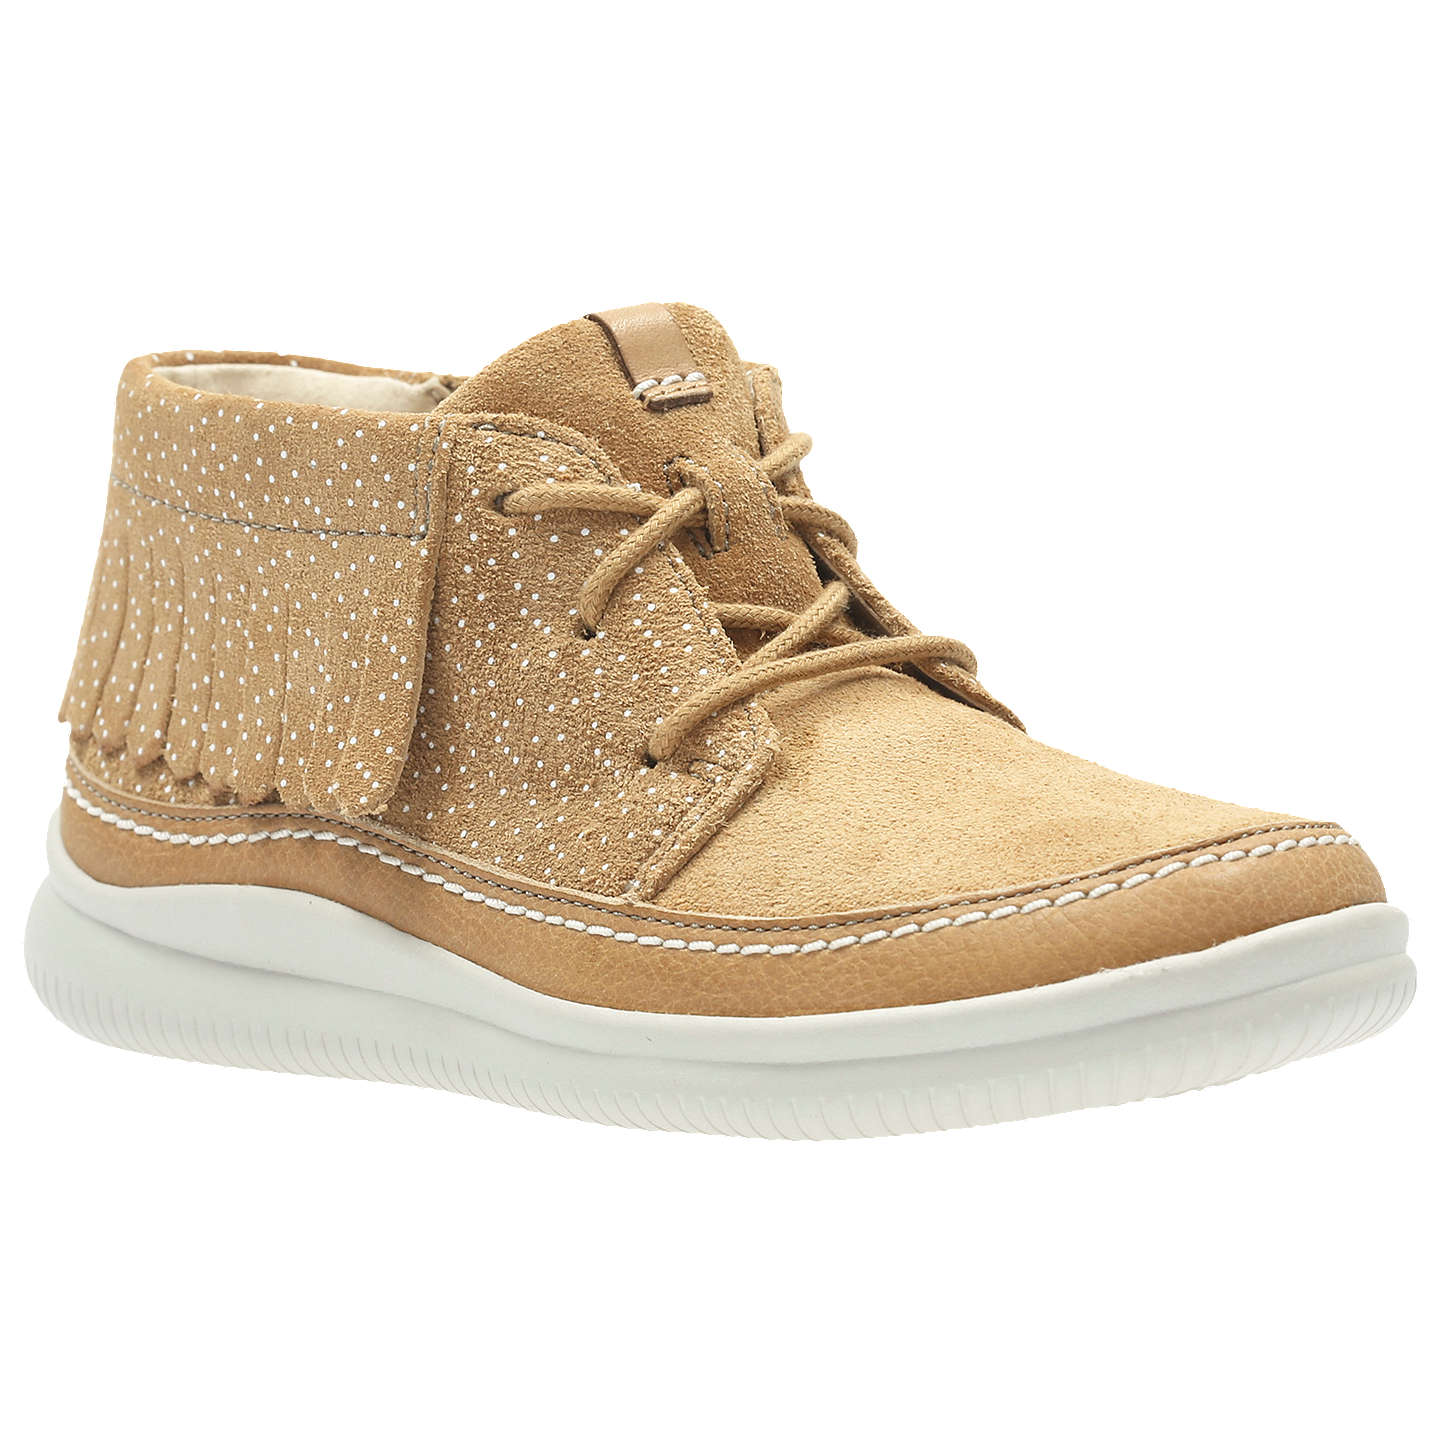 BuyClarks Children's Cloud Aklark Boot, Tan, 8F Jnr Online at johnlewis. ...